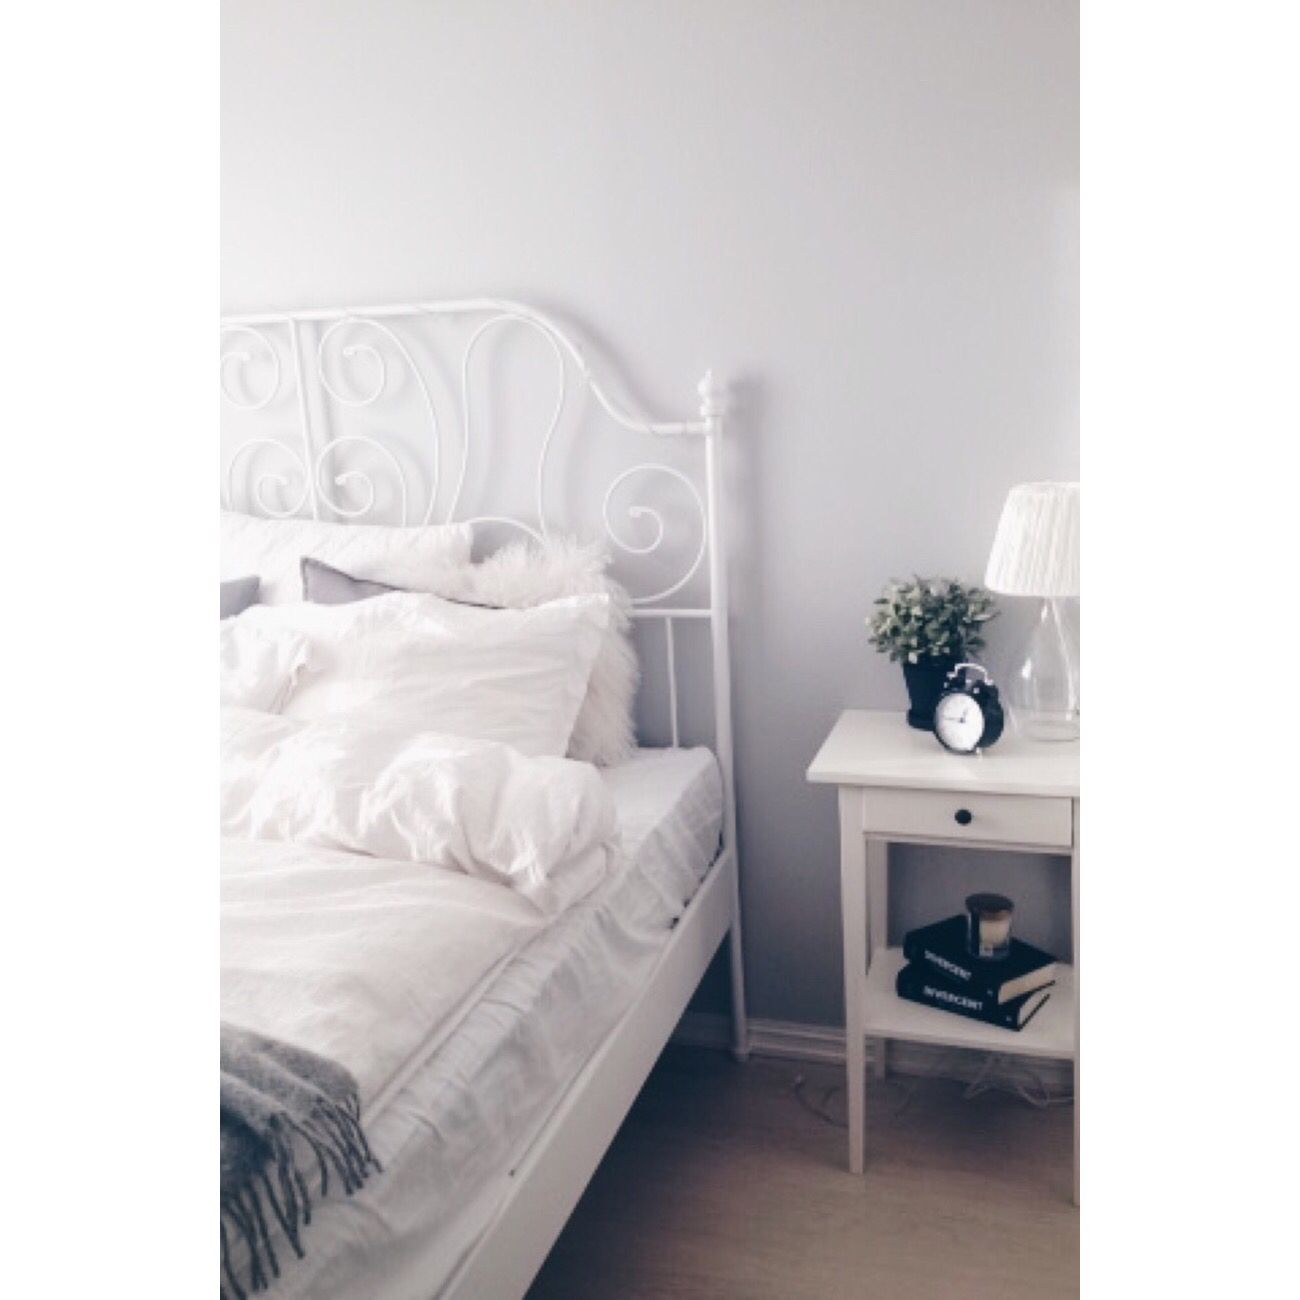 Room inspiration tumblr leirvik bed ikea bedroom for Room inspiration